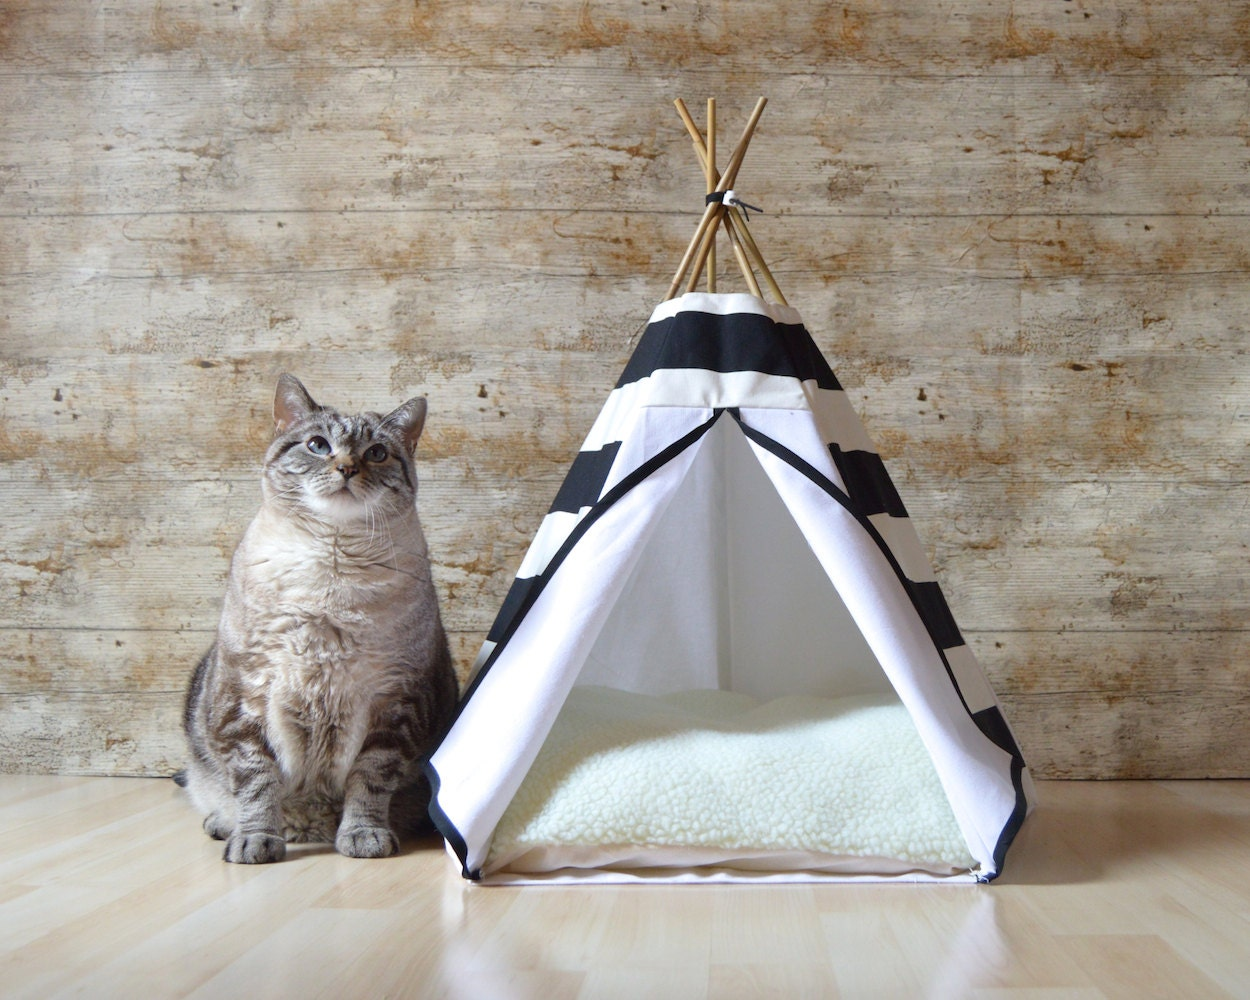 lit chat tipi chat tipi chien avec coussin par hiptepeehooray. Black Bedroom Furniture Sets. Home Design Ideas